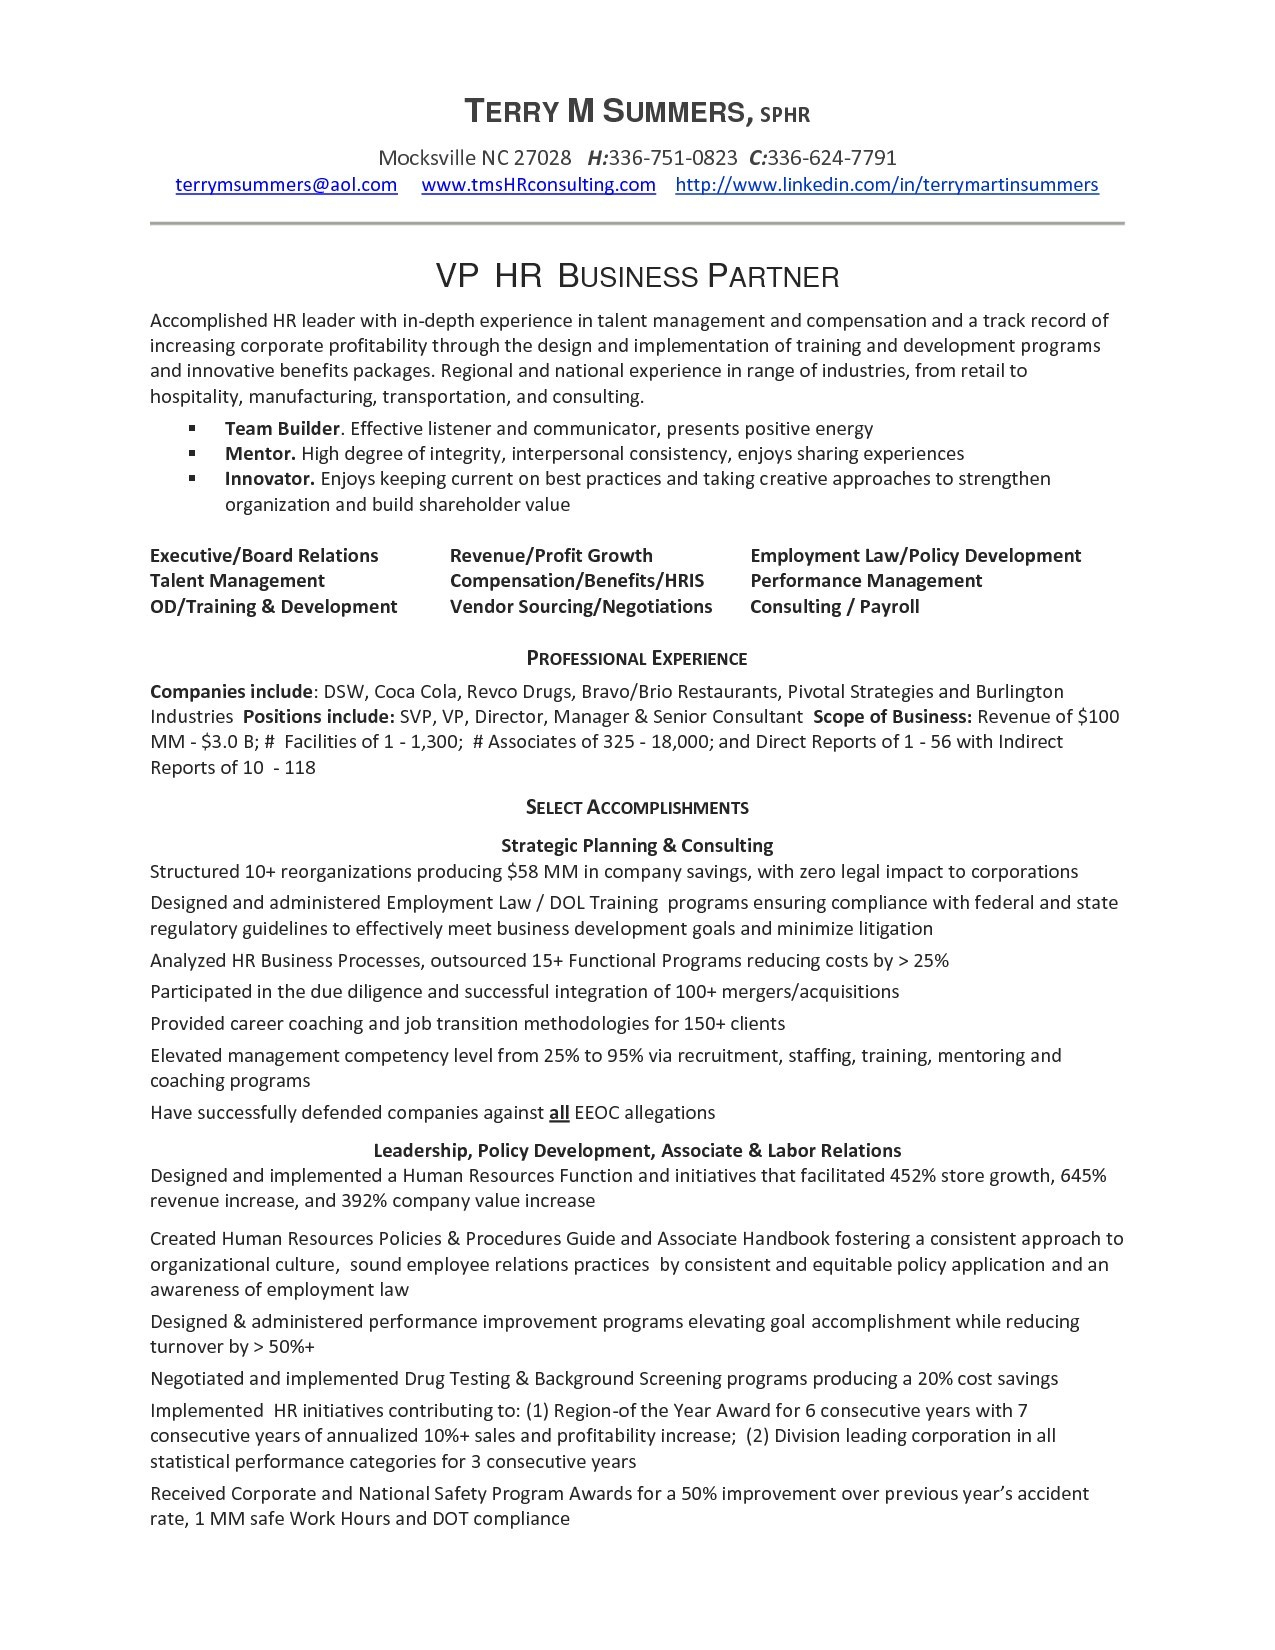 Commercial Letter Of Intent Template - Letter Intent Template Business Partnership Refrence Letter